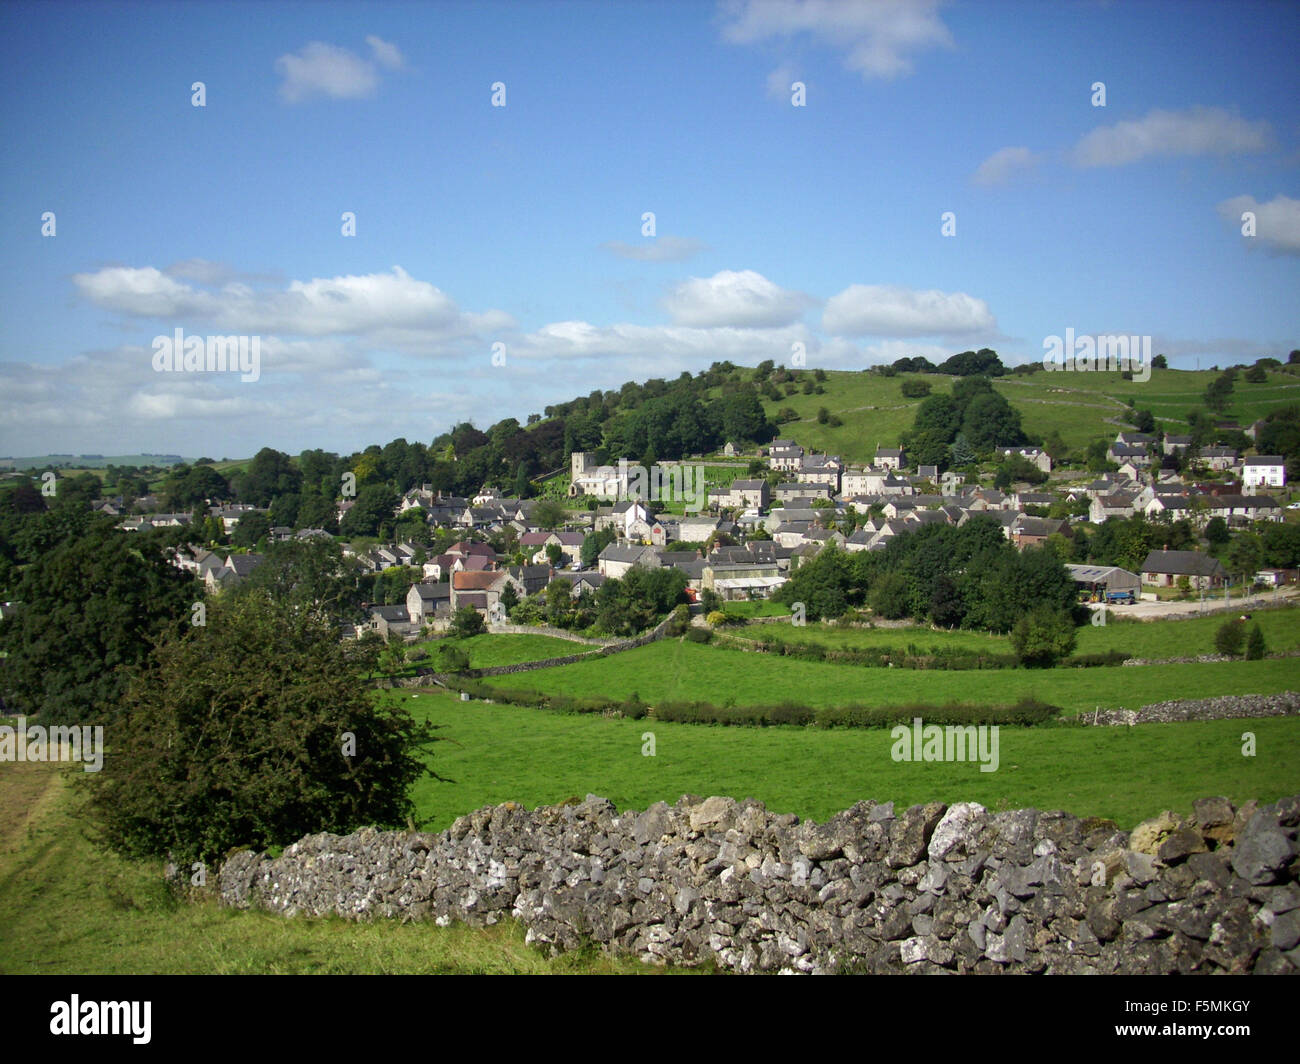 Village of Brassington, Derbyshire - Stock Image